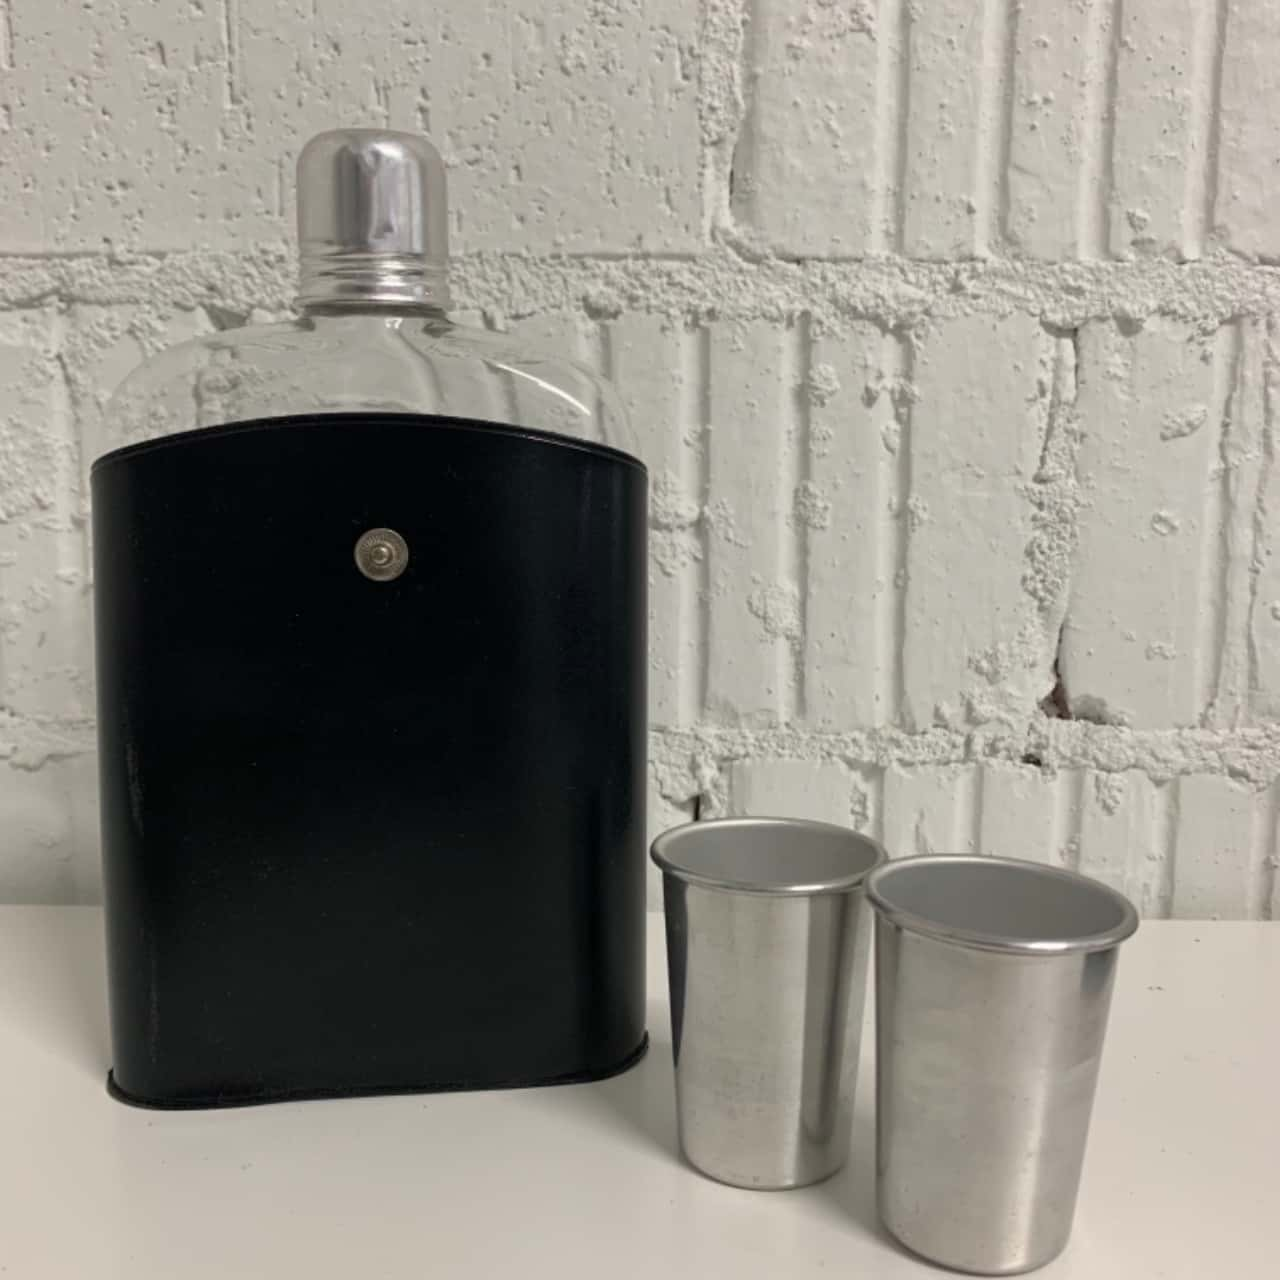 Drink Flask with 2 cups - How to Improve your golf